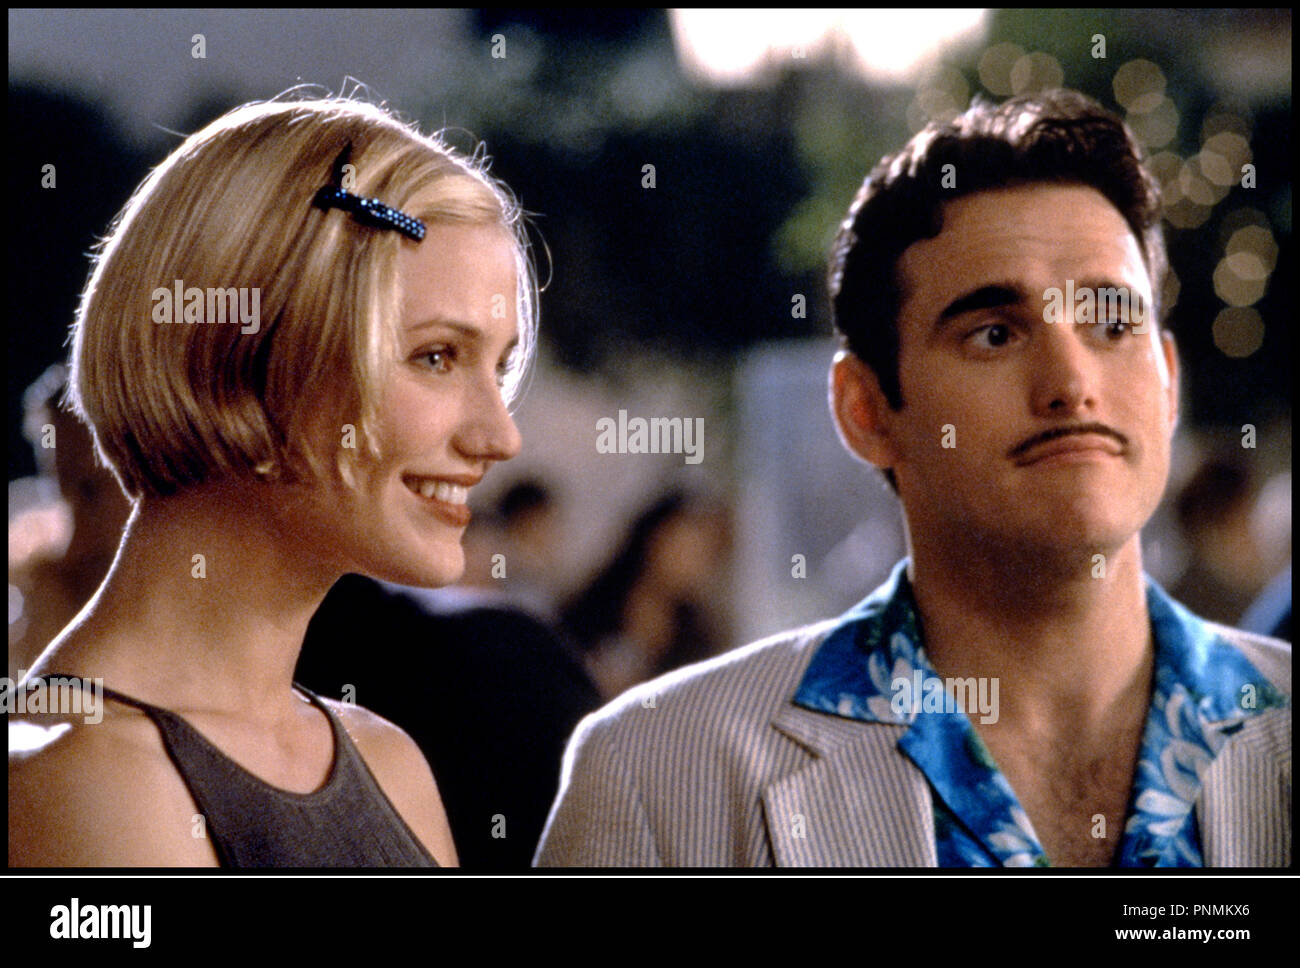 Prod DB © 20 th Century Fox / DR MARY A TOUT PRIX (THERE'S SOMETHING ABOUT MARY) de Bobby et Peter Farrelly 1998 USA avec Cameron Diaz et Matt Dillon barette, - Stock Image